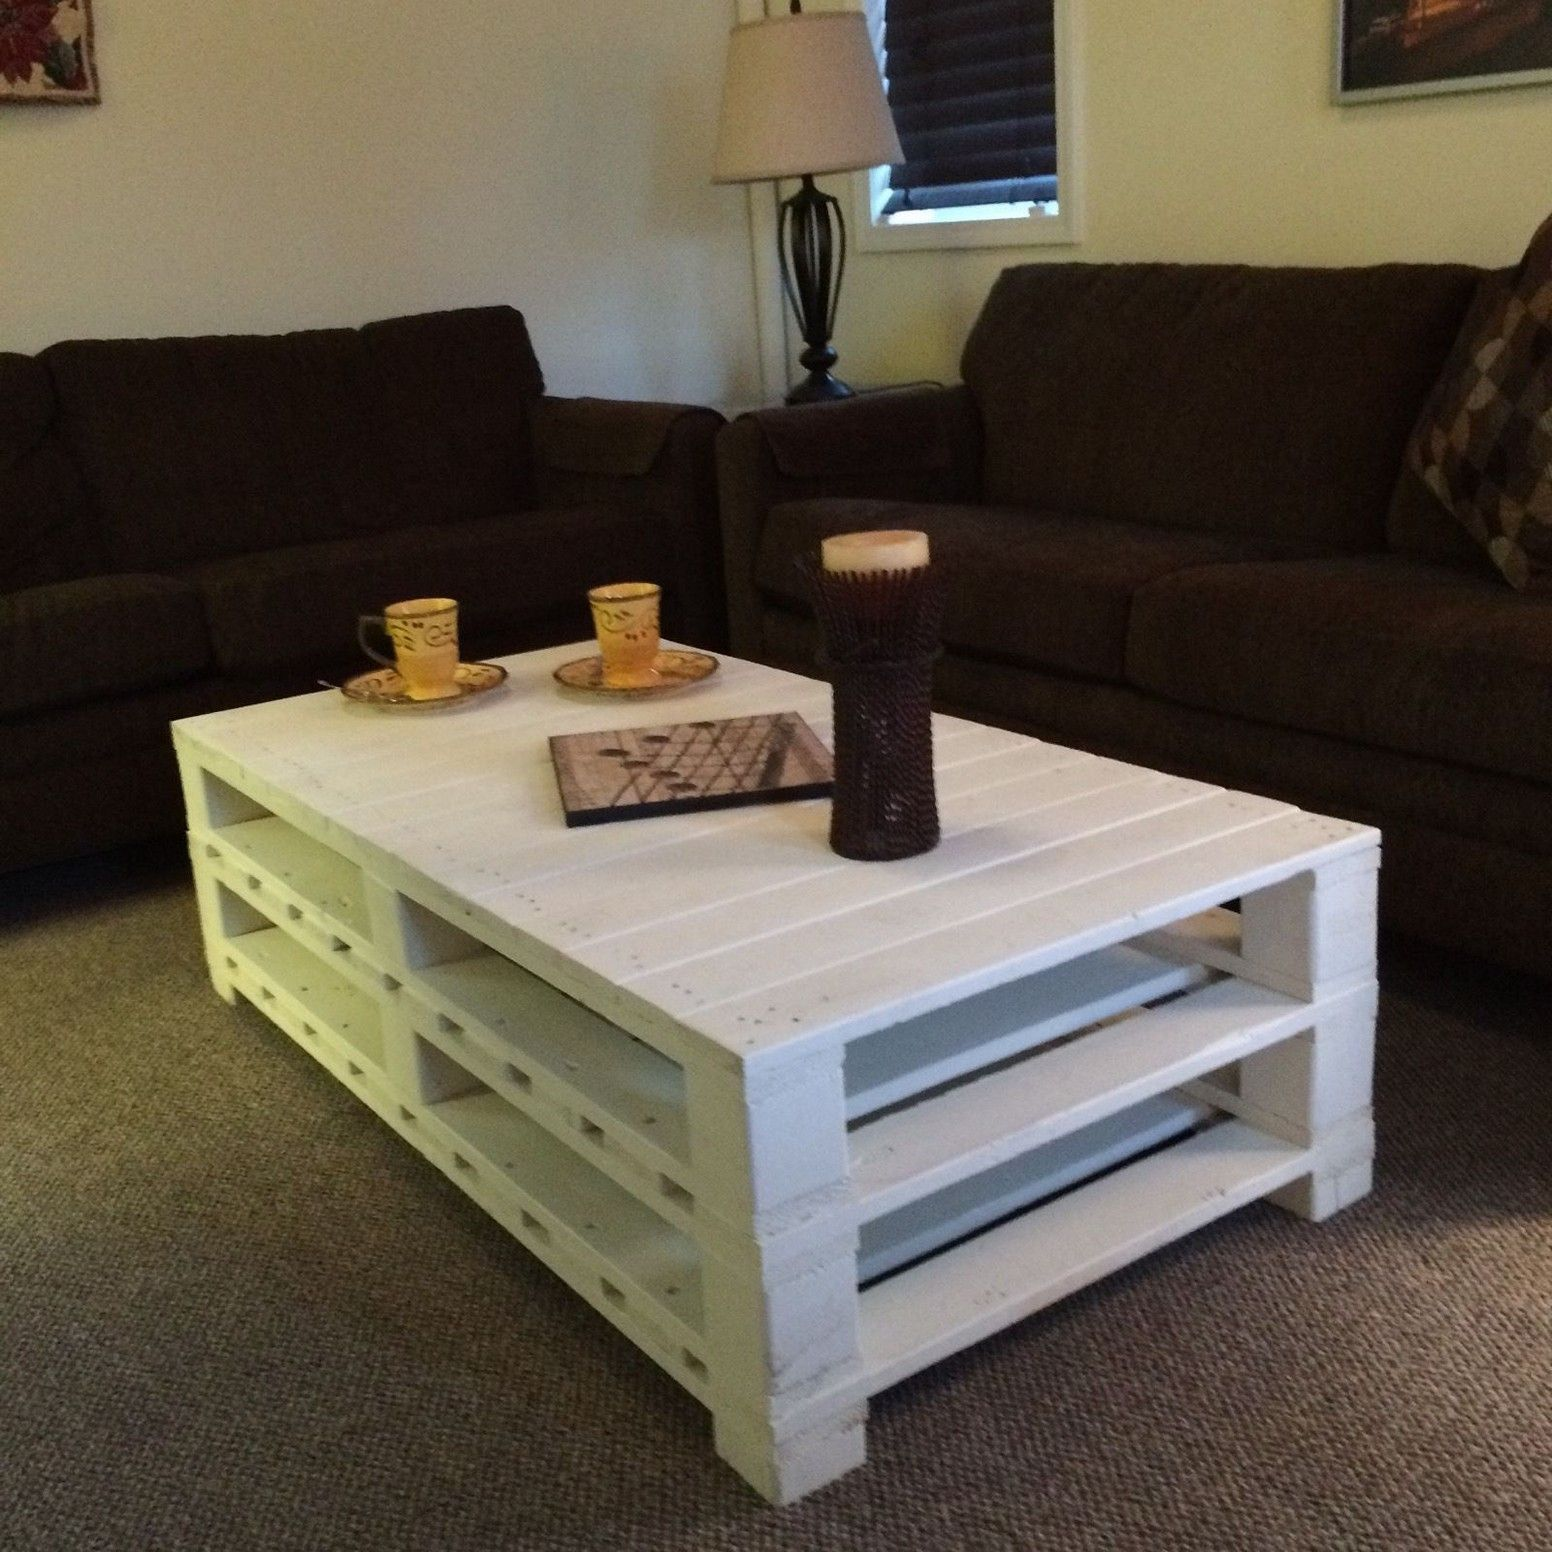 5 ideas for a do it yourself coffee table lets do it coffee 5 ideas for a do it yourself coffee table lets do it solutioingenieria Choice Image